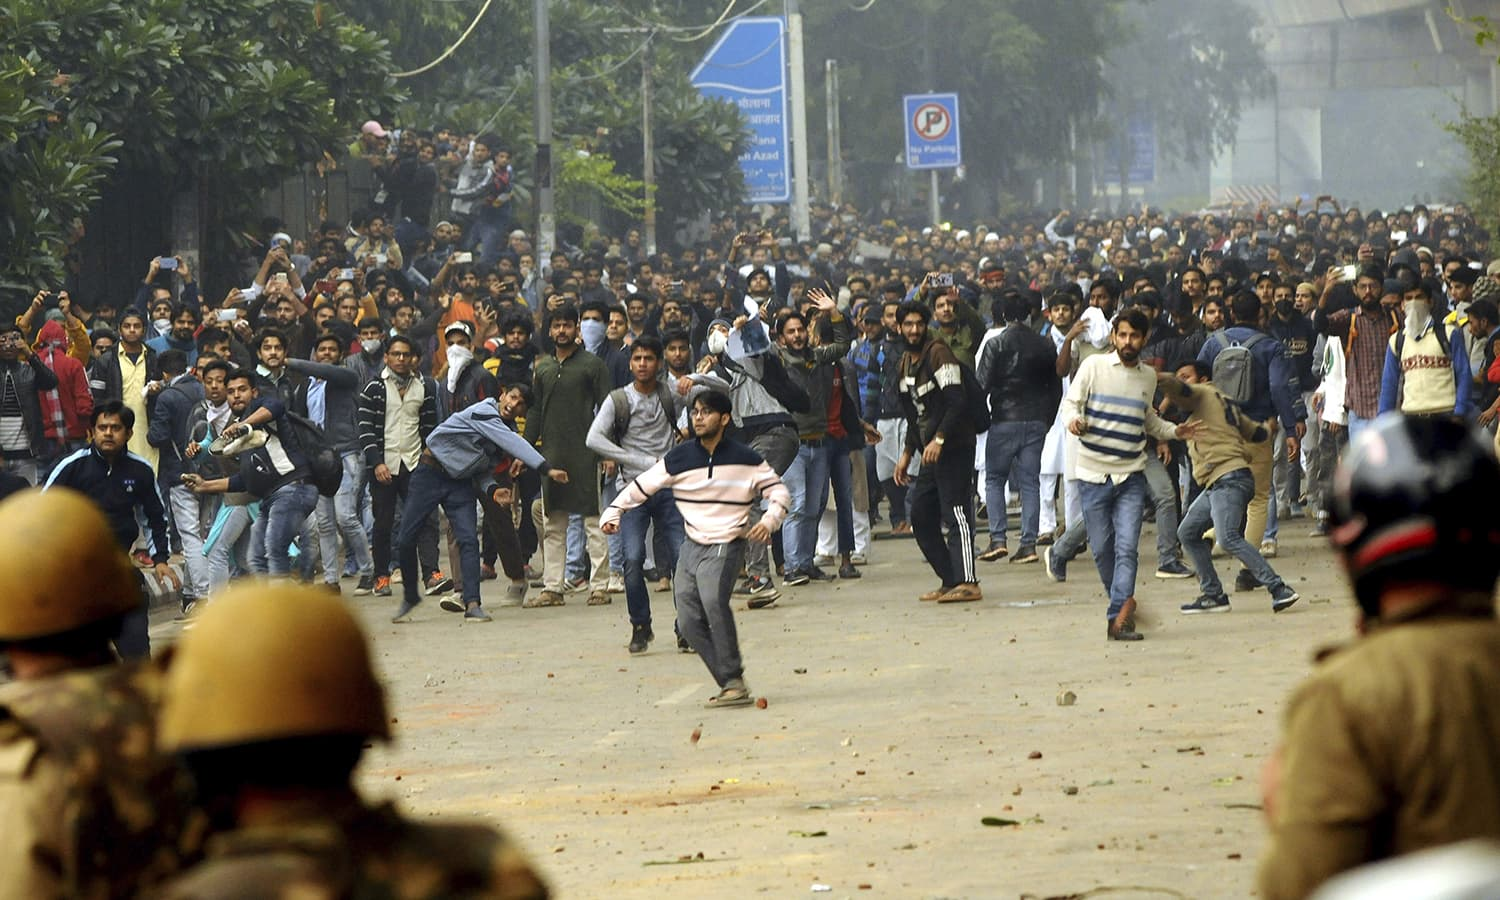 Students shout slogans and pelt stones outside the Jamia Millia Islamia University during a protest against the Citizenship Amendment Bill, in New Delhi, India, Friday. — AP